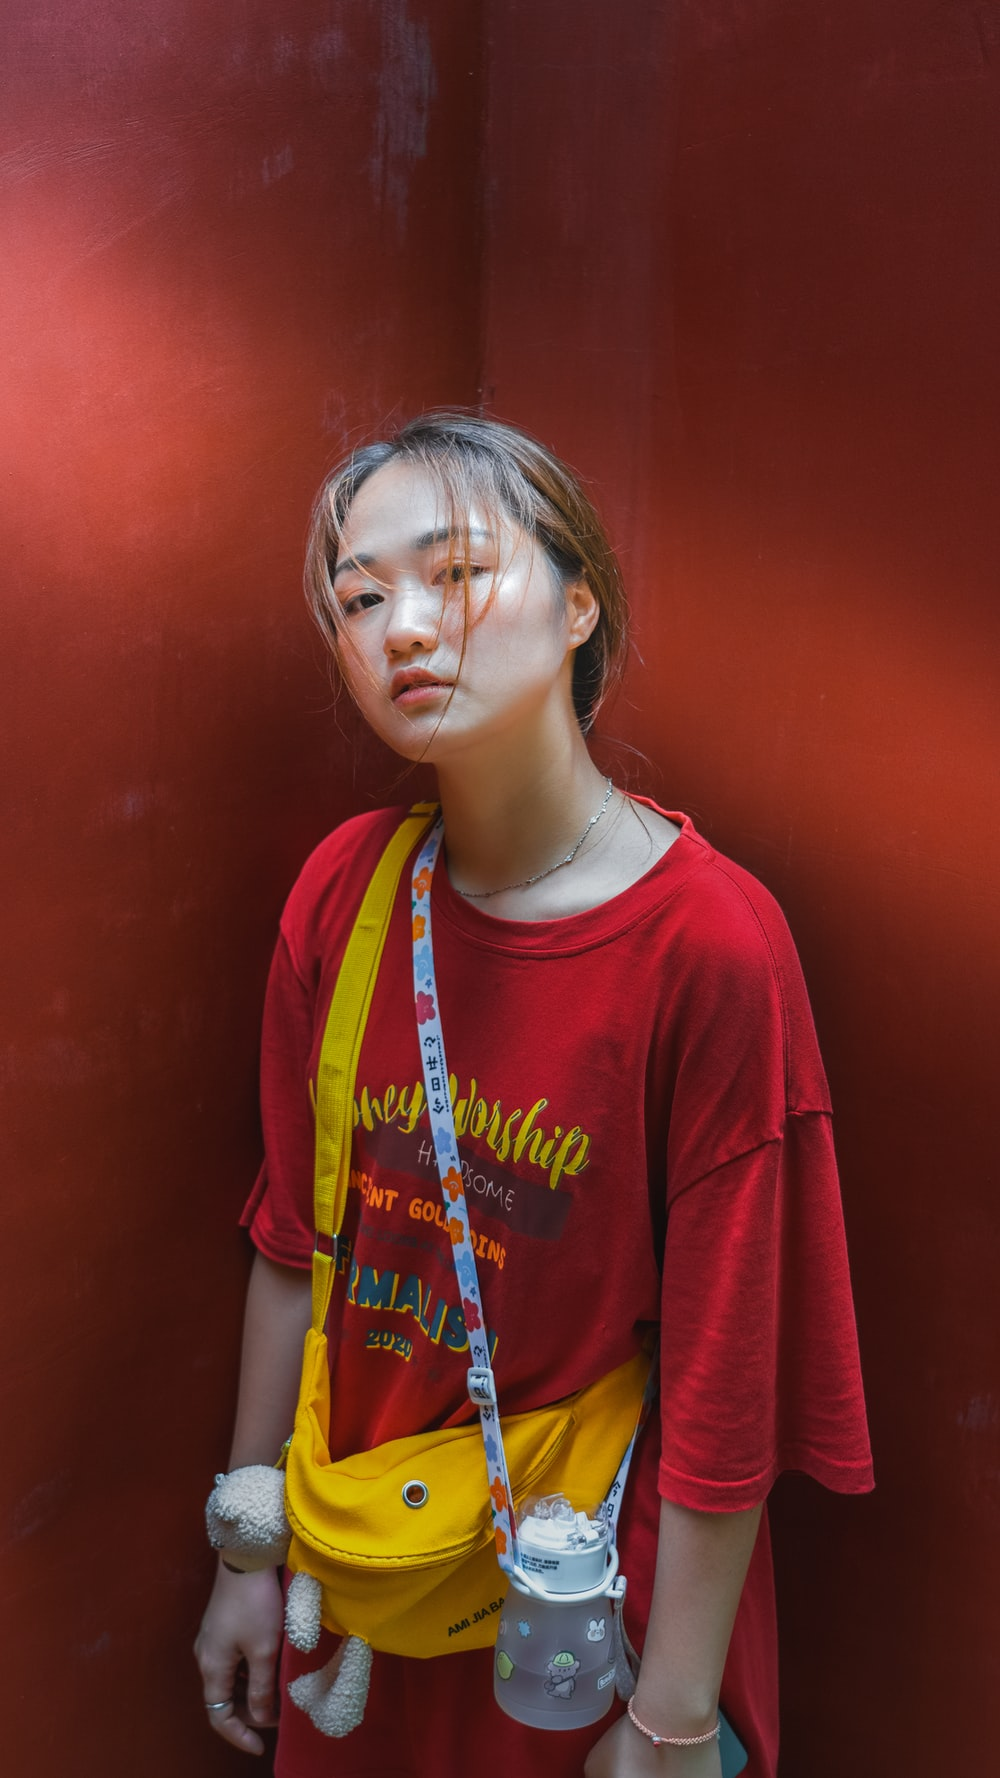 girl in red crew neck t-shirt